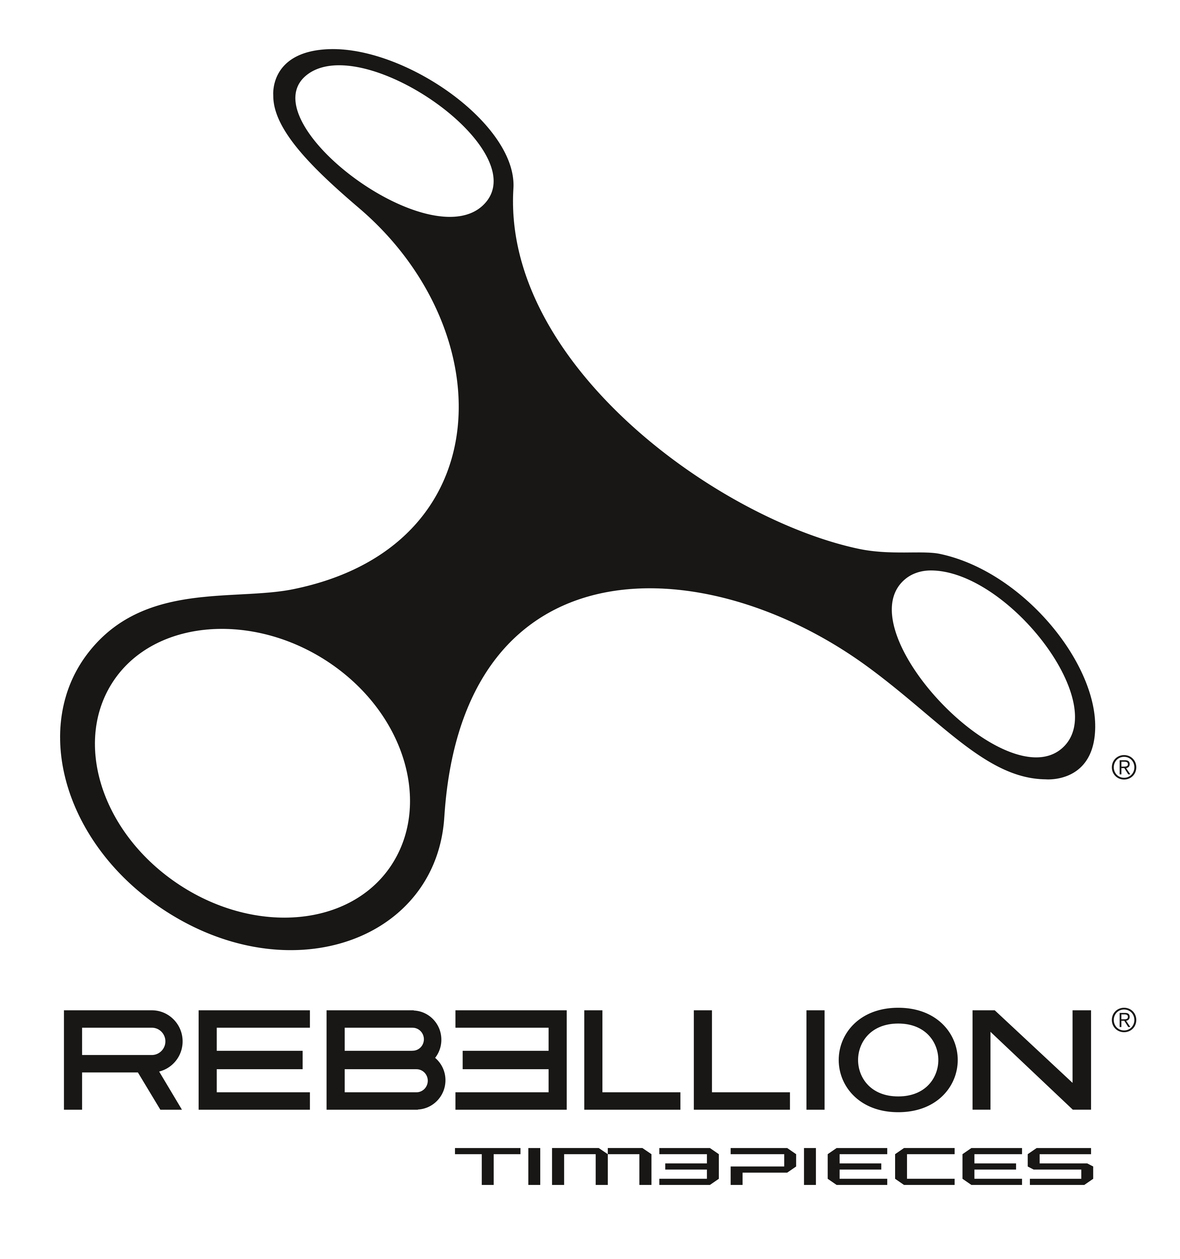 cp 3P logo-REBELLION-TIMEPIECES-2018